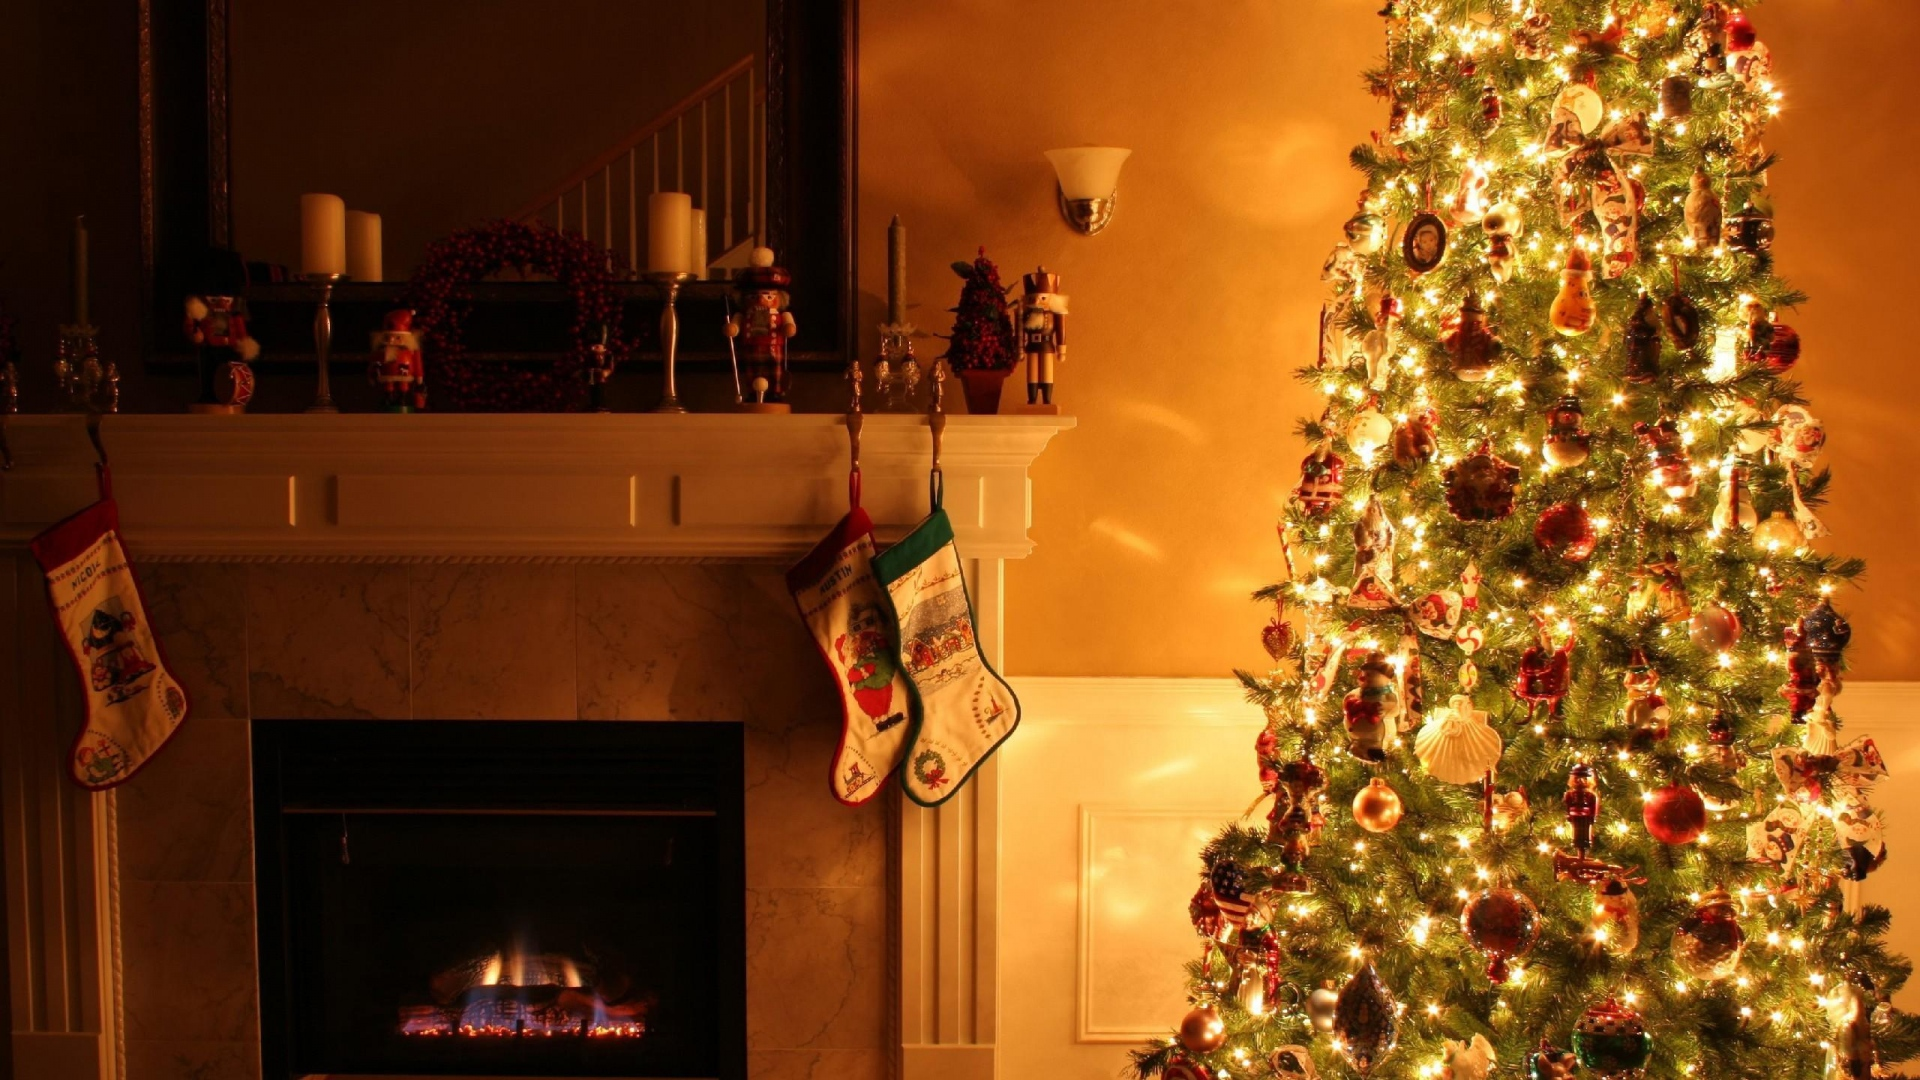 download wallpaper 1920x1080 christmas tree fireplace garland